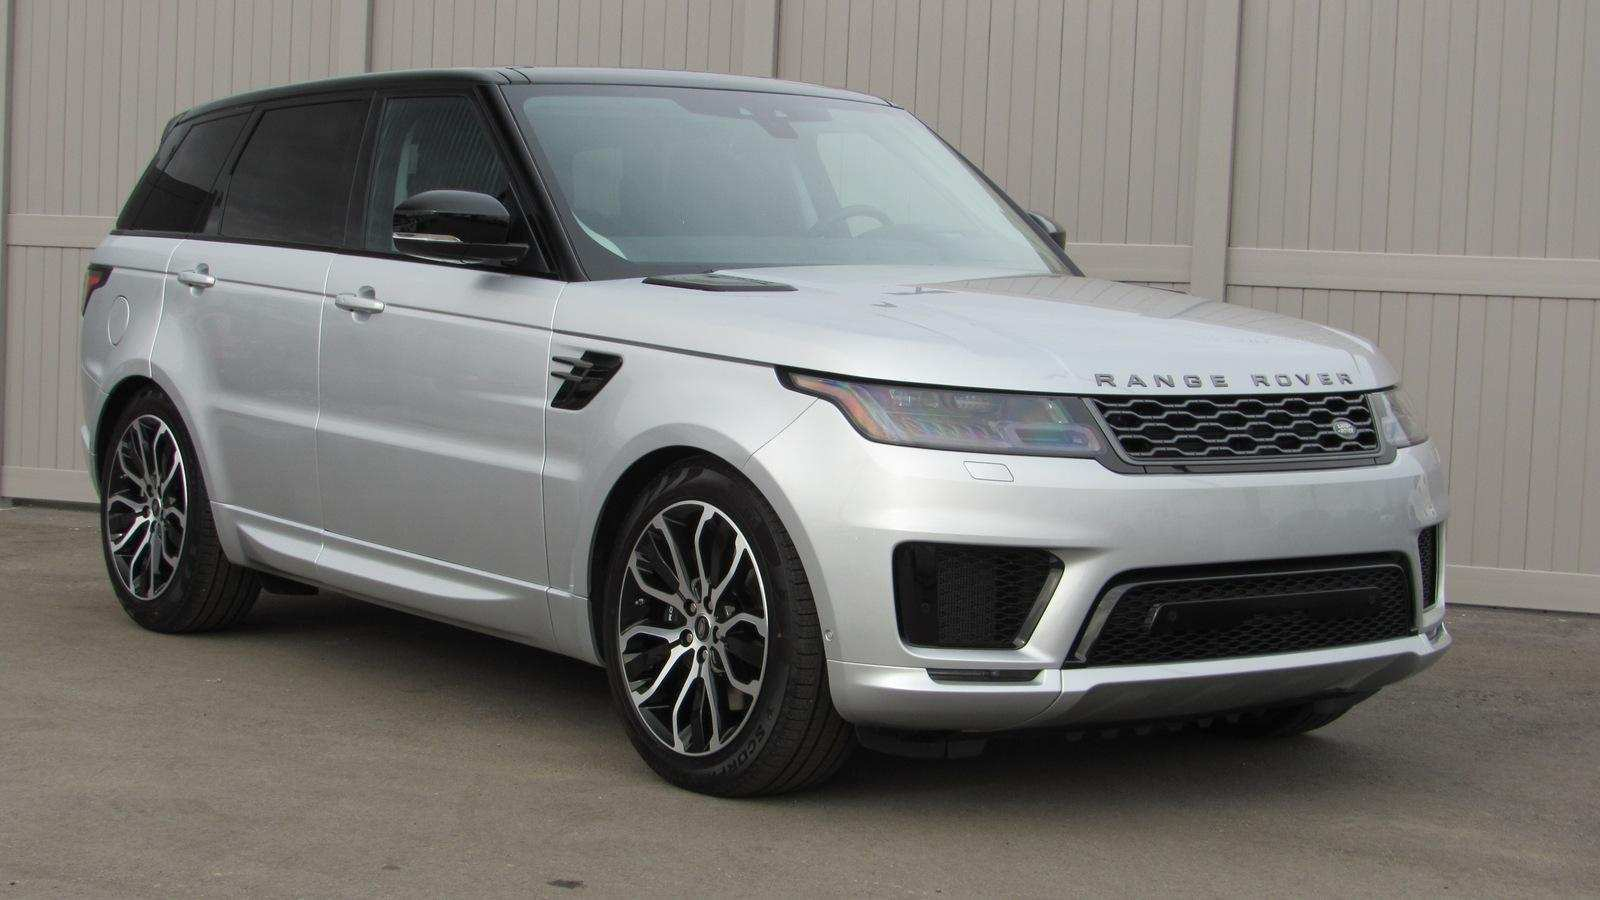 56 New 2019 Range Rover Sport Pictures